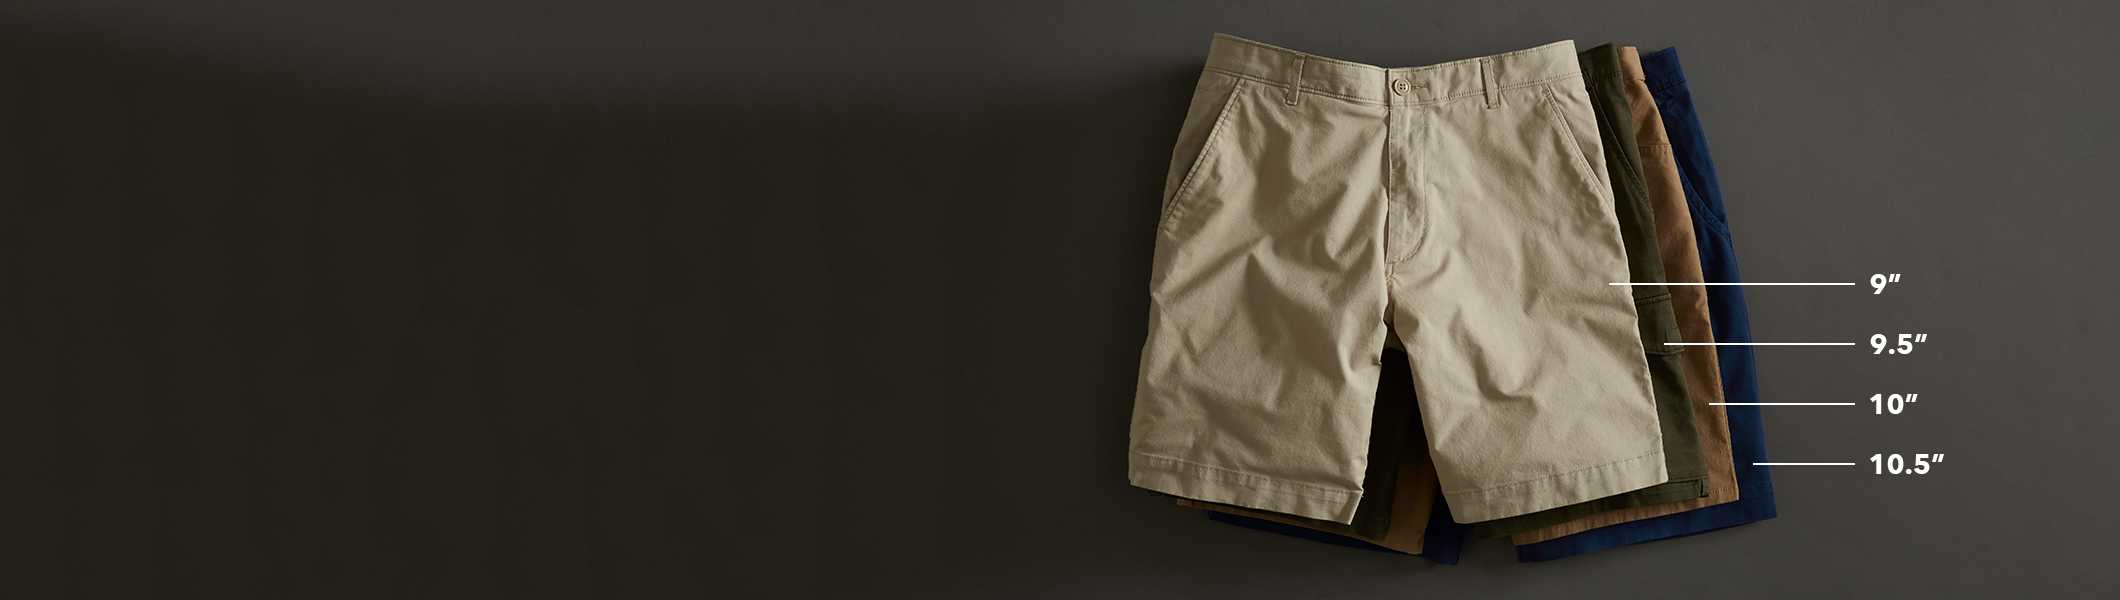 6782d0a6ca Men's Shorts - Shop Cargo, Chino, Khaki Shorts & More | Dockers® US